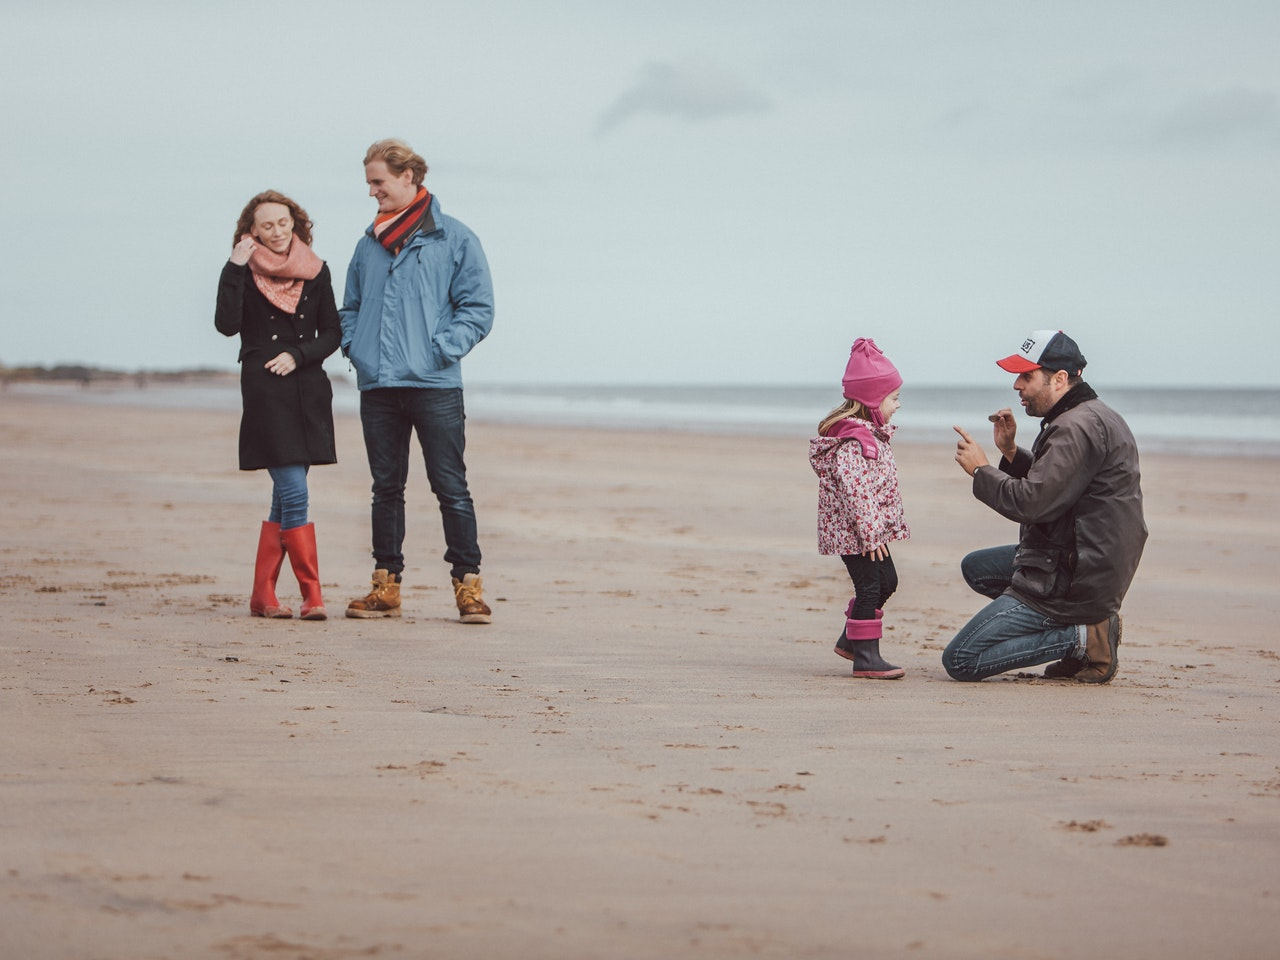 Shooting on location in Northumberland